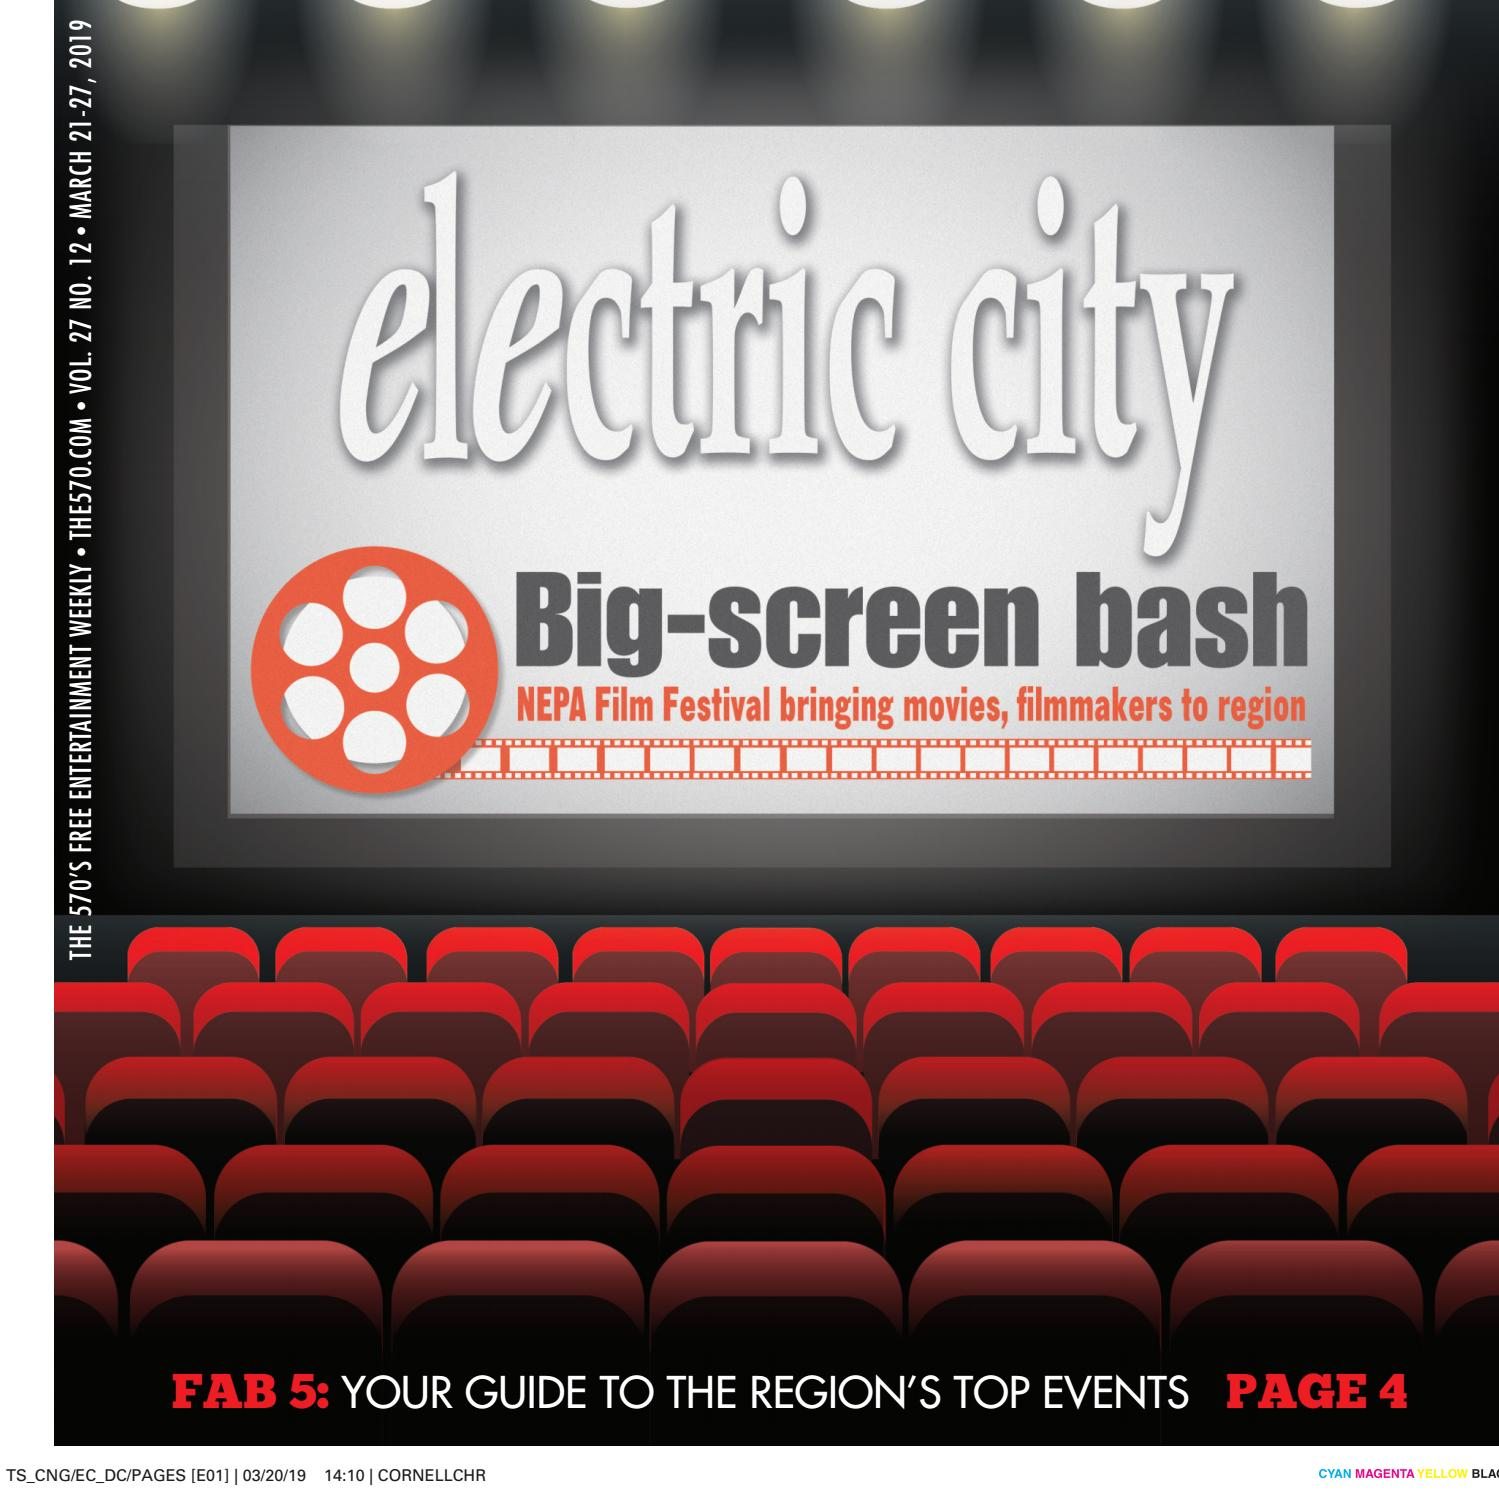 20a570b99021b6 Electric City--03-21-19 by CNG Newspaper Group - issuu